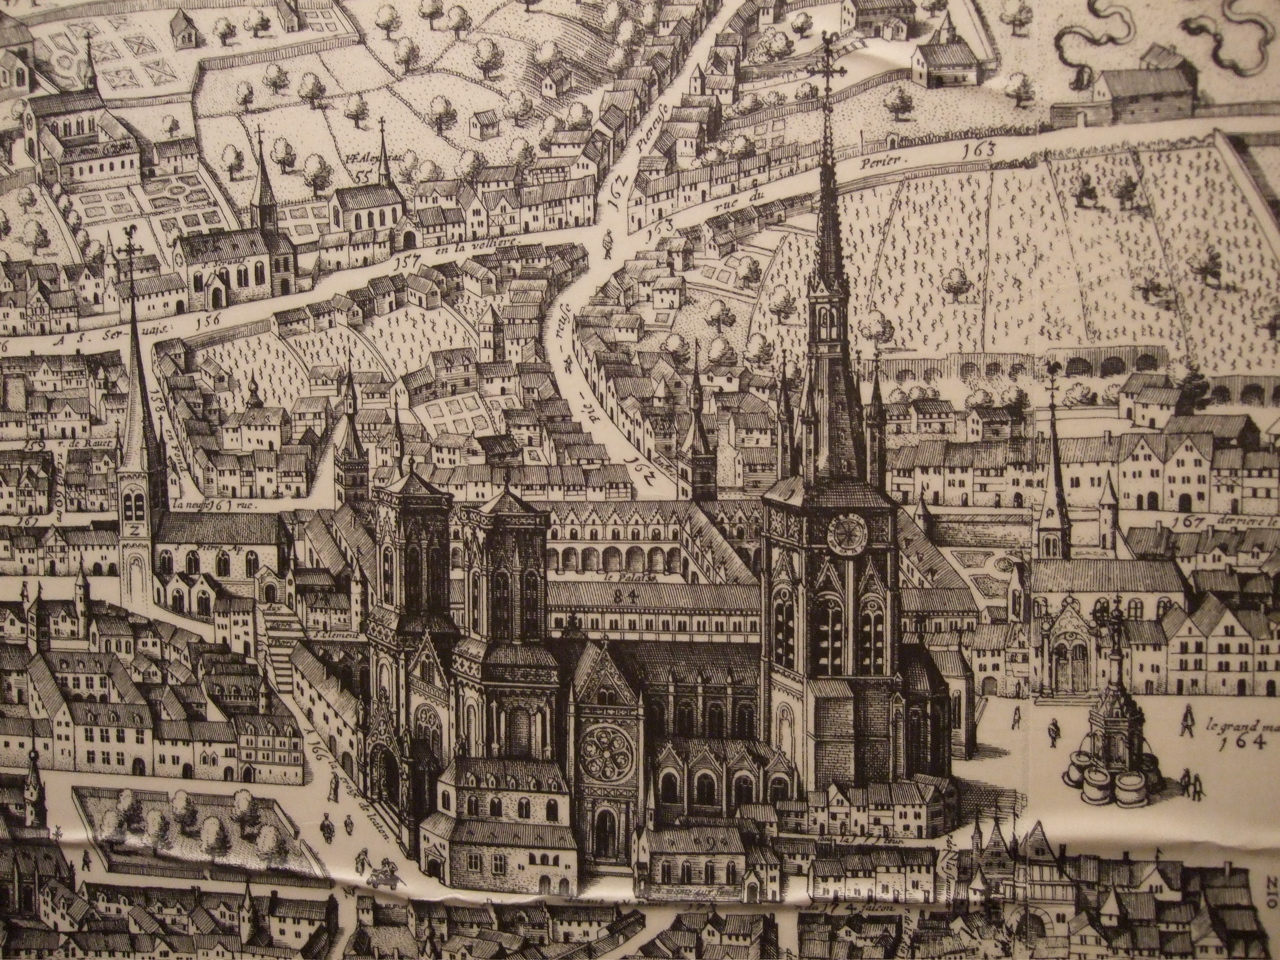 A 16thC engraving of the cathedral of Saint Lambert